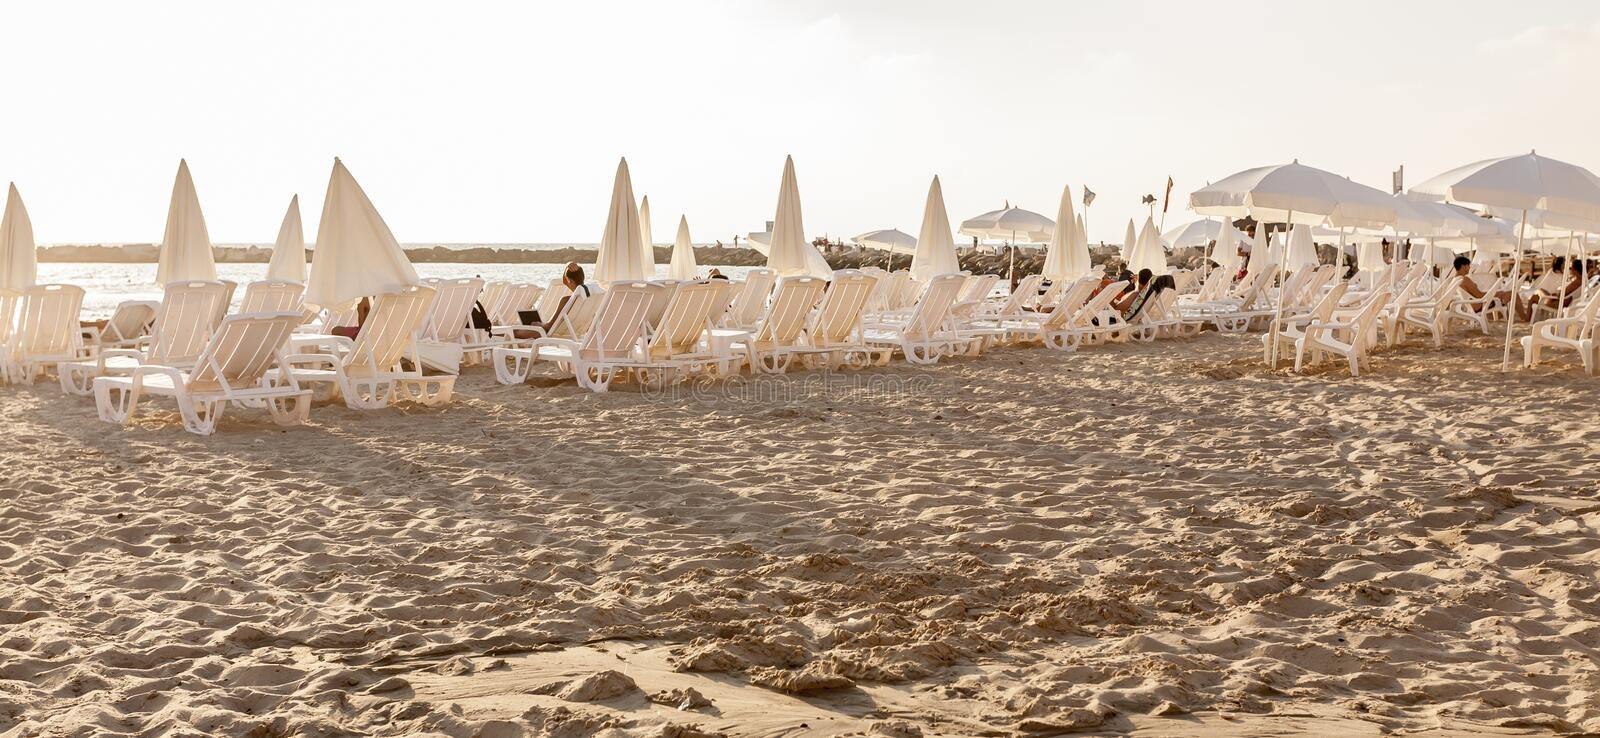 Tel Aviv, Israel - September 8, 2011: People relaxing on the beach in Tel Aviv stock images